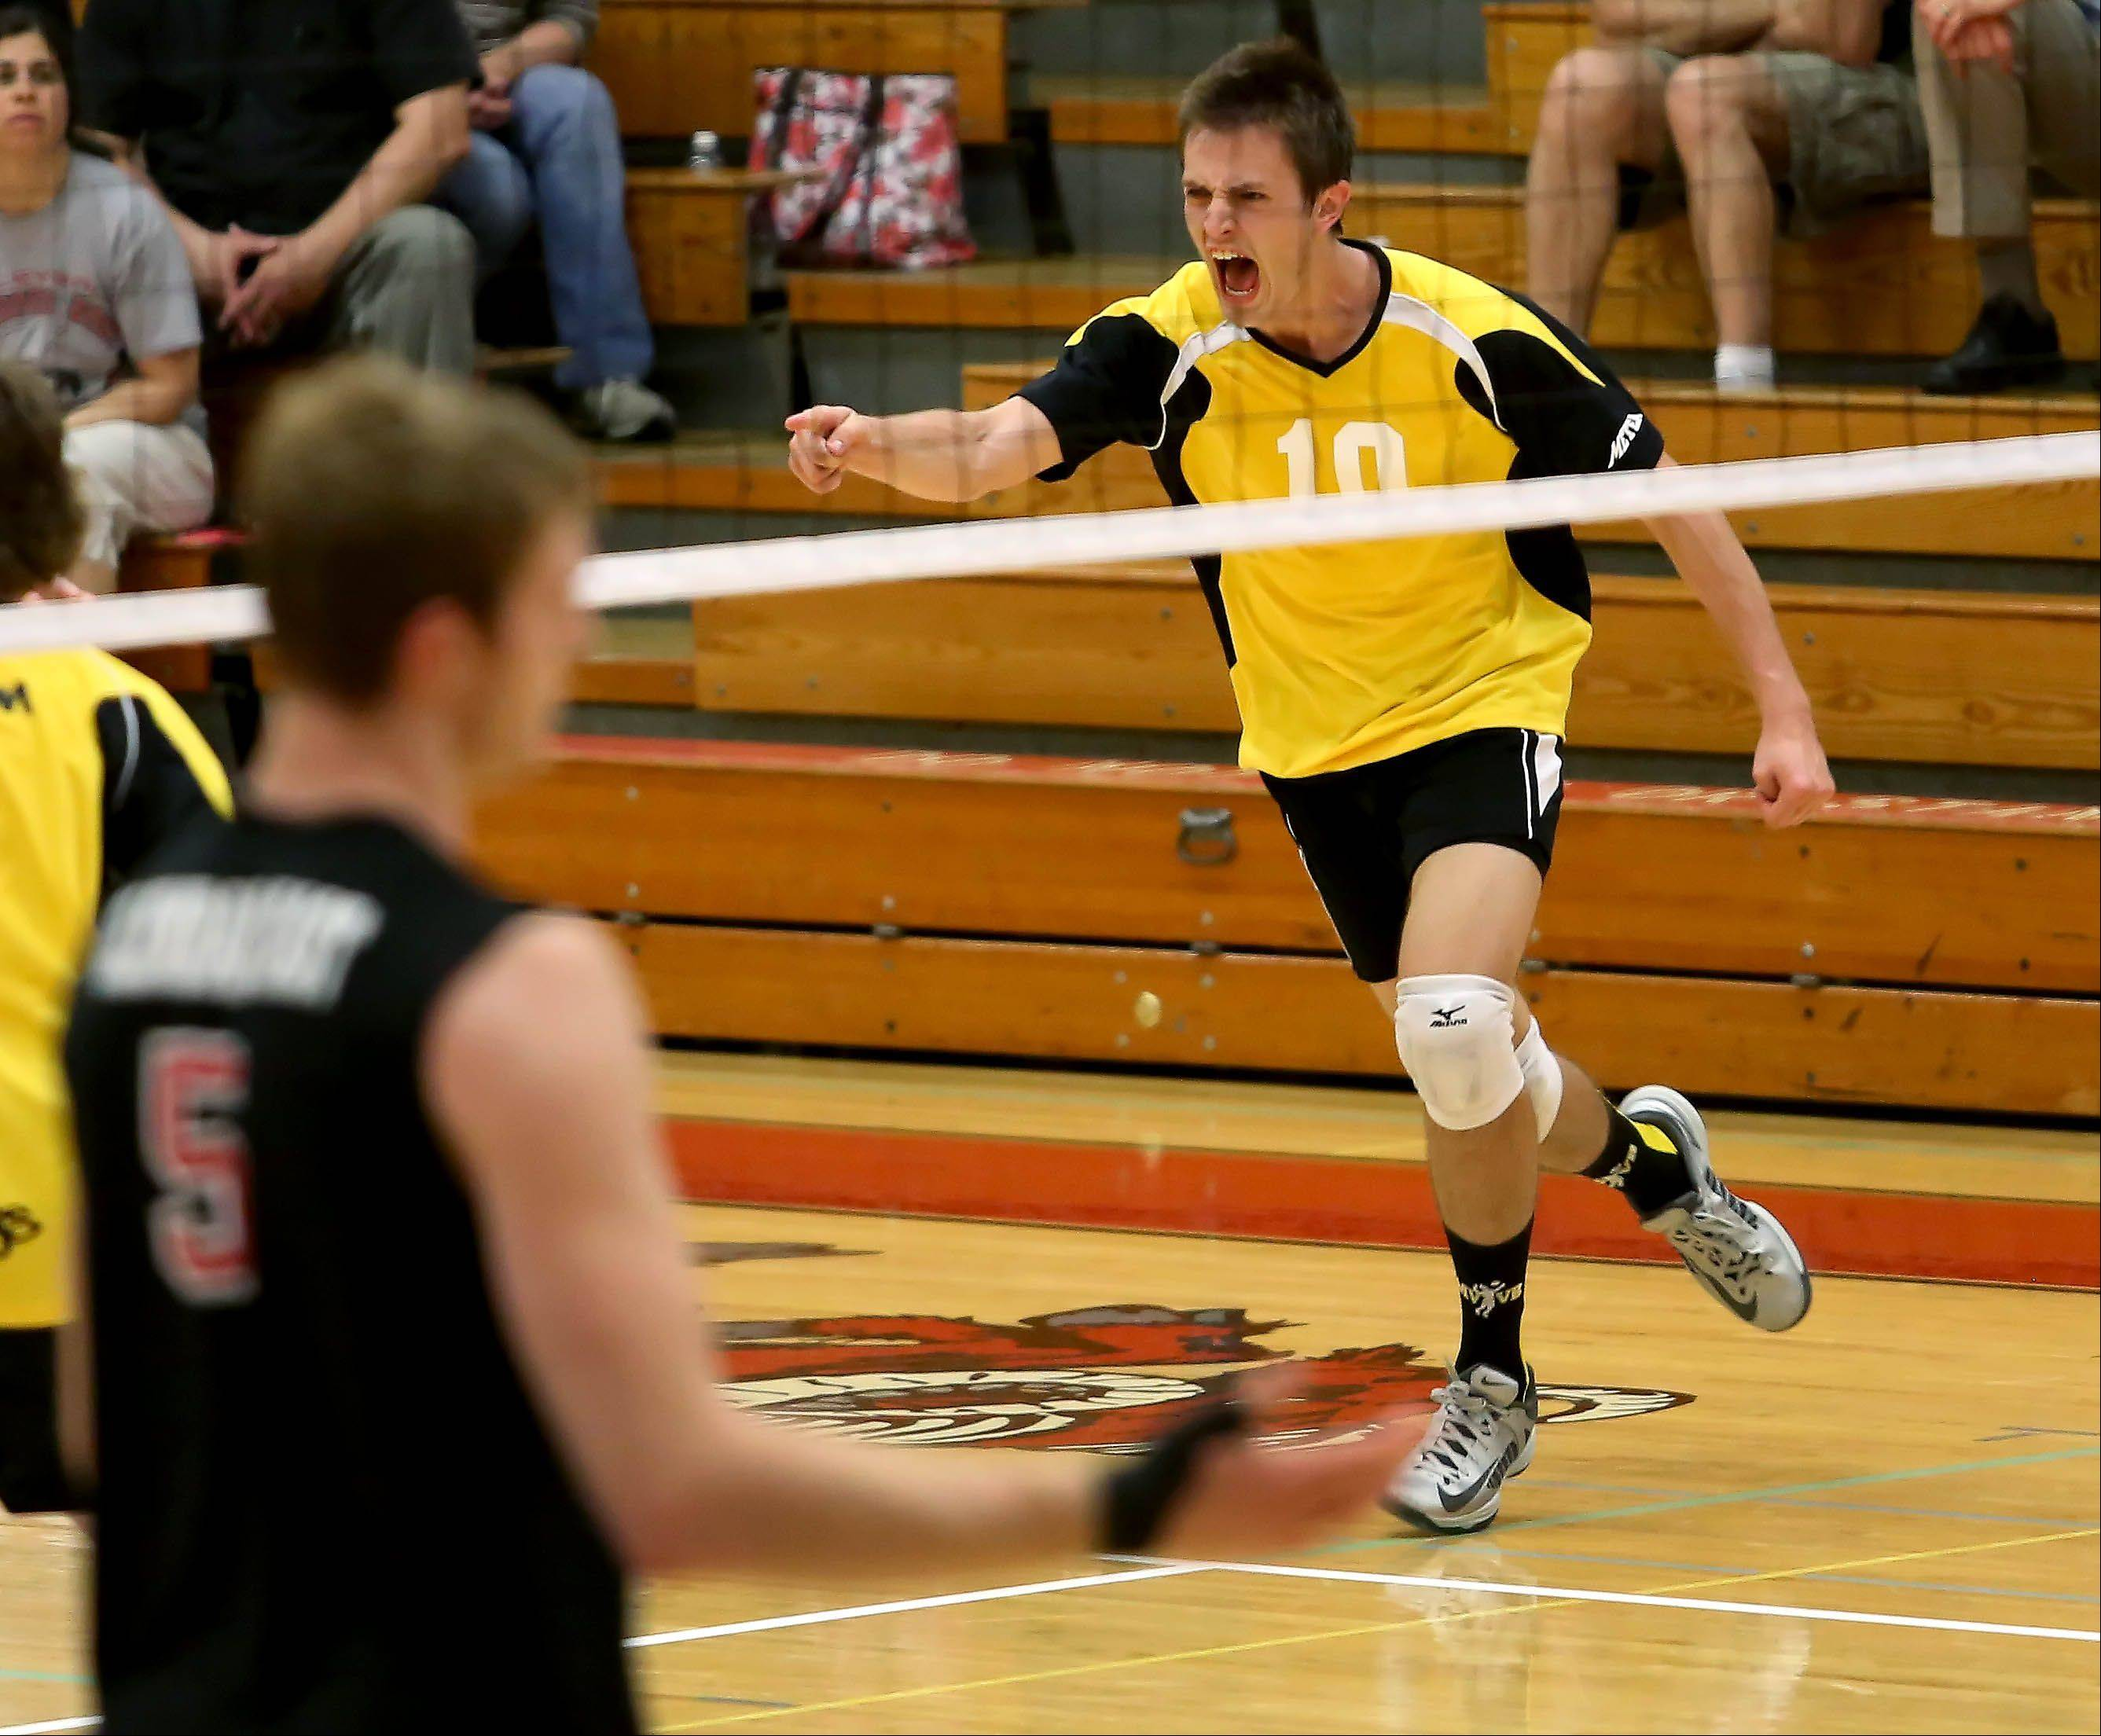 Martin Krasuski of Metea Valley reacts to a point won against Glenbard East in boys regional volleyball action in Lombard in Tuesday. Metea Valley won 2-0.